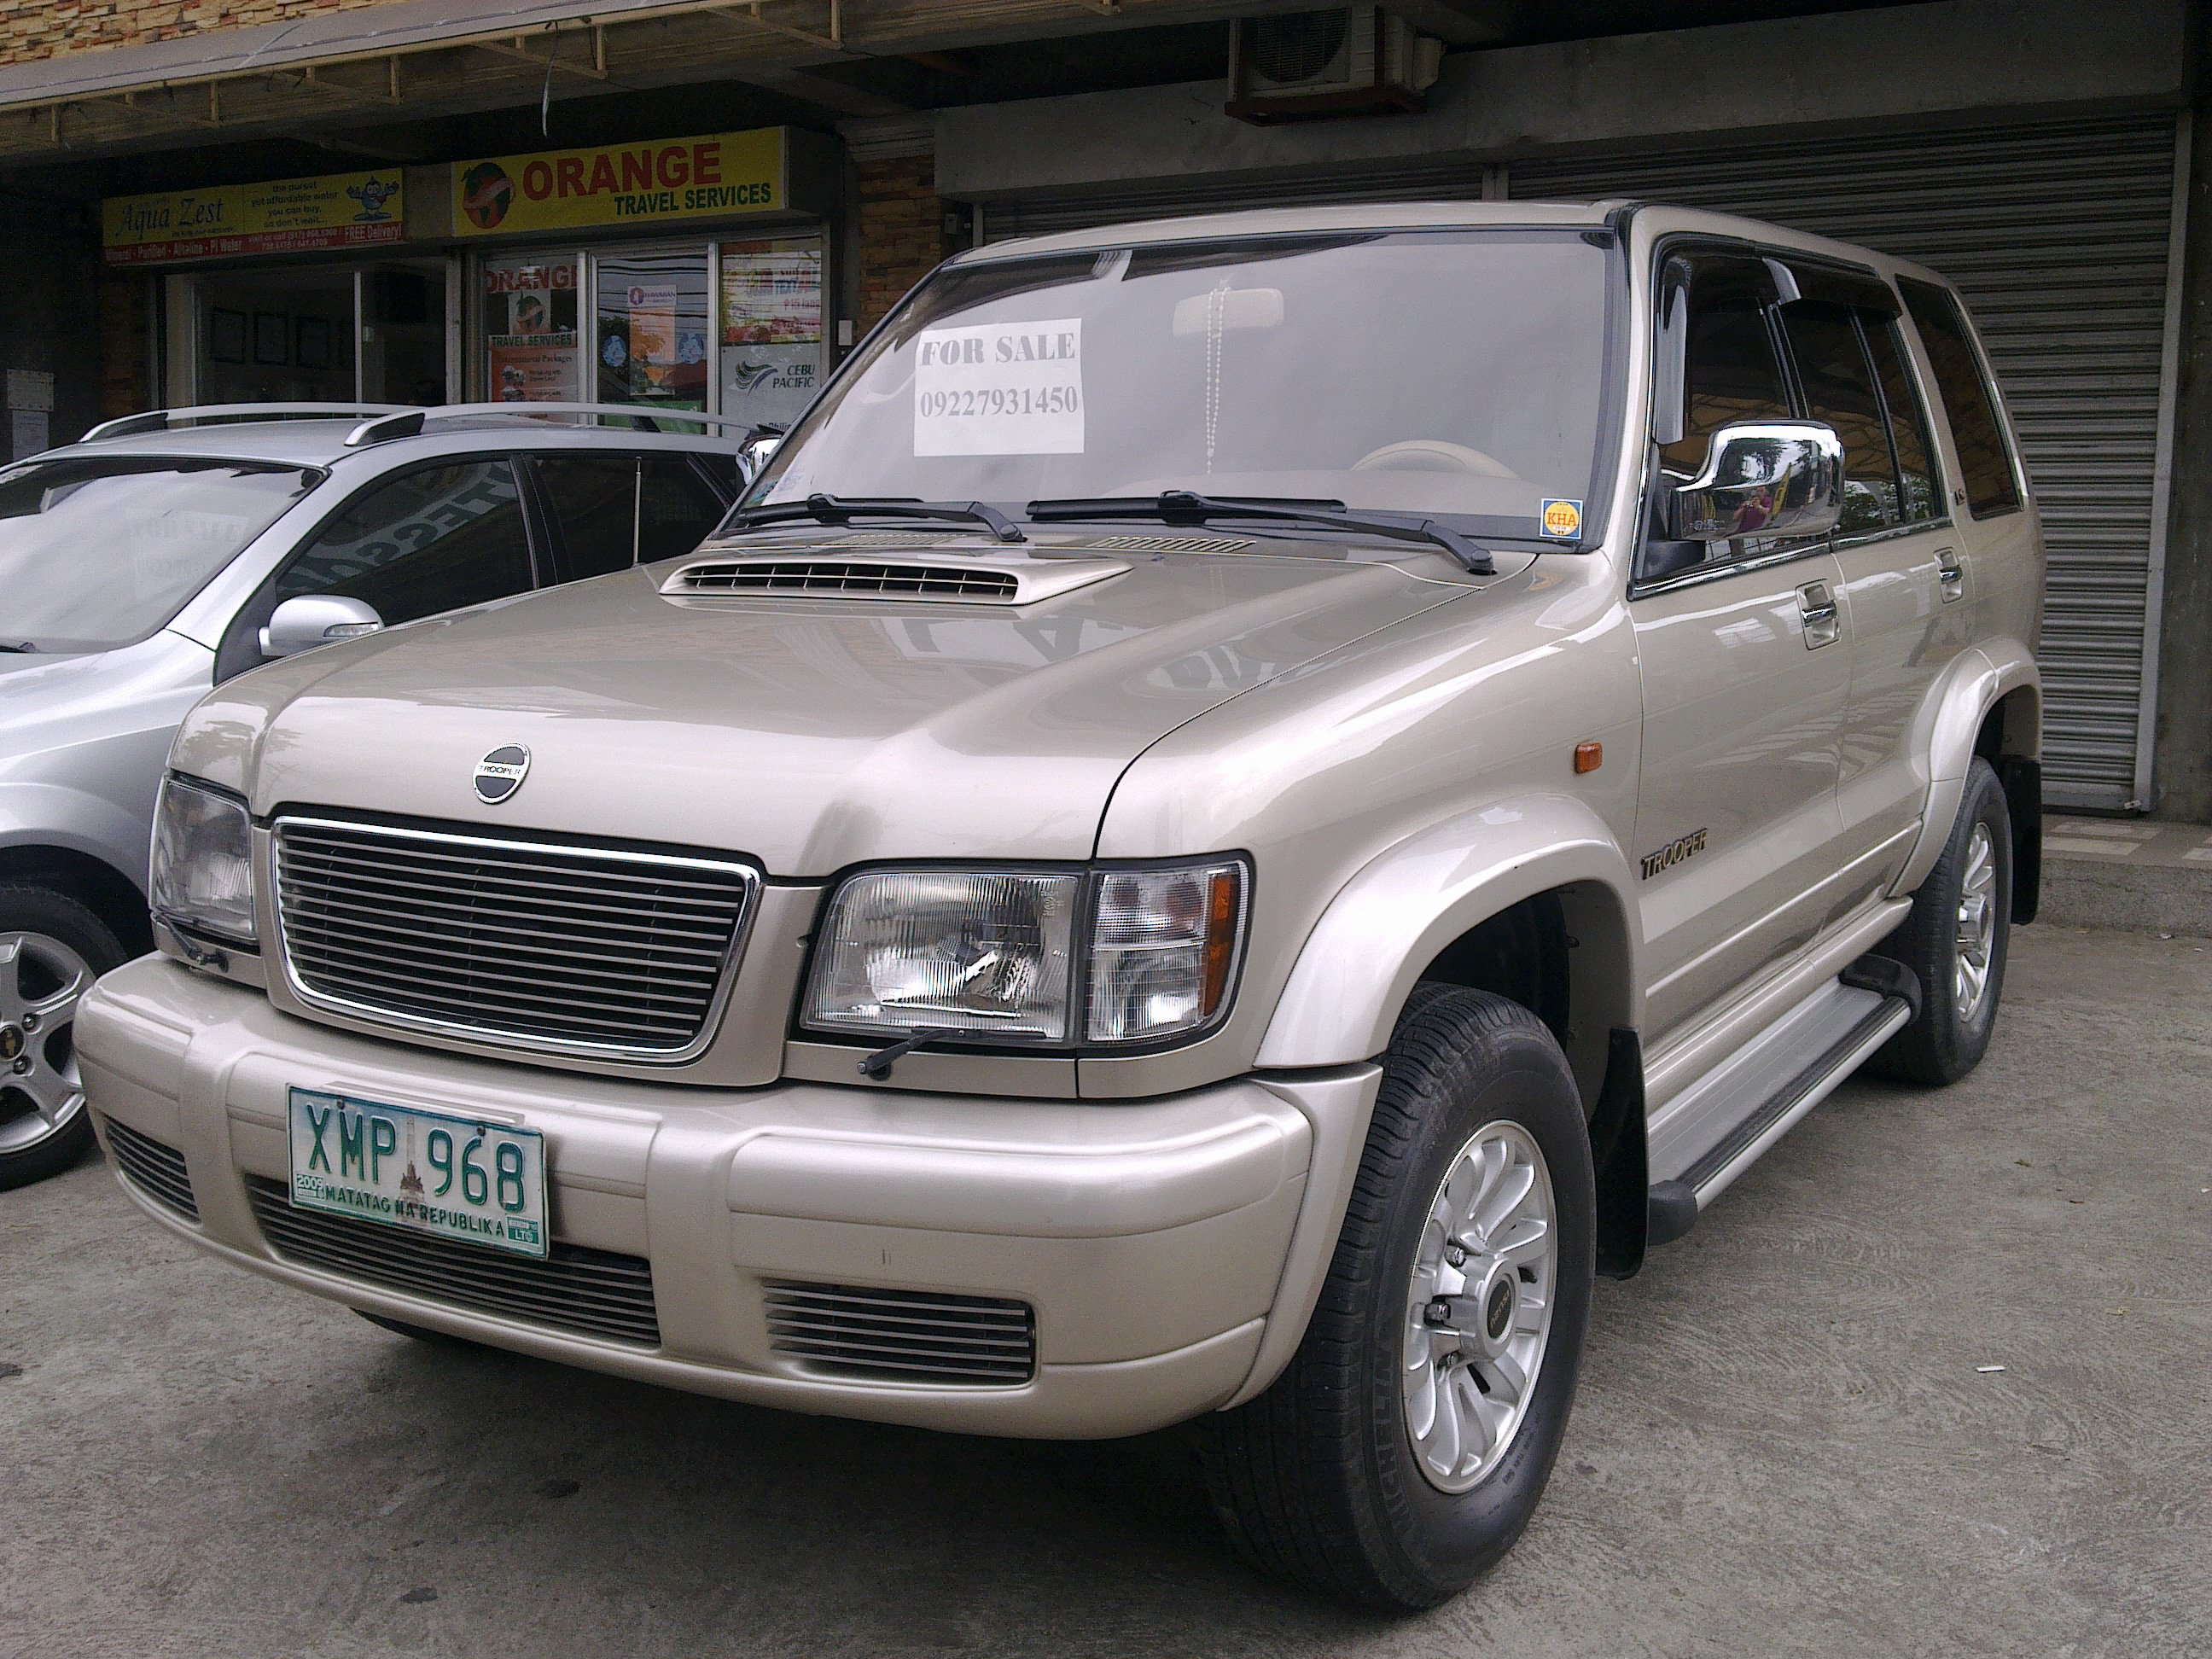 FOR SALE: 2004 ISUZU TROOPER LS SKYROOF EDITION LOCAL